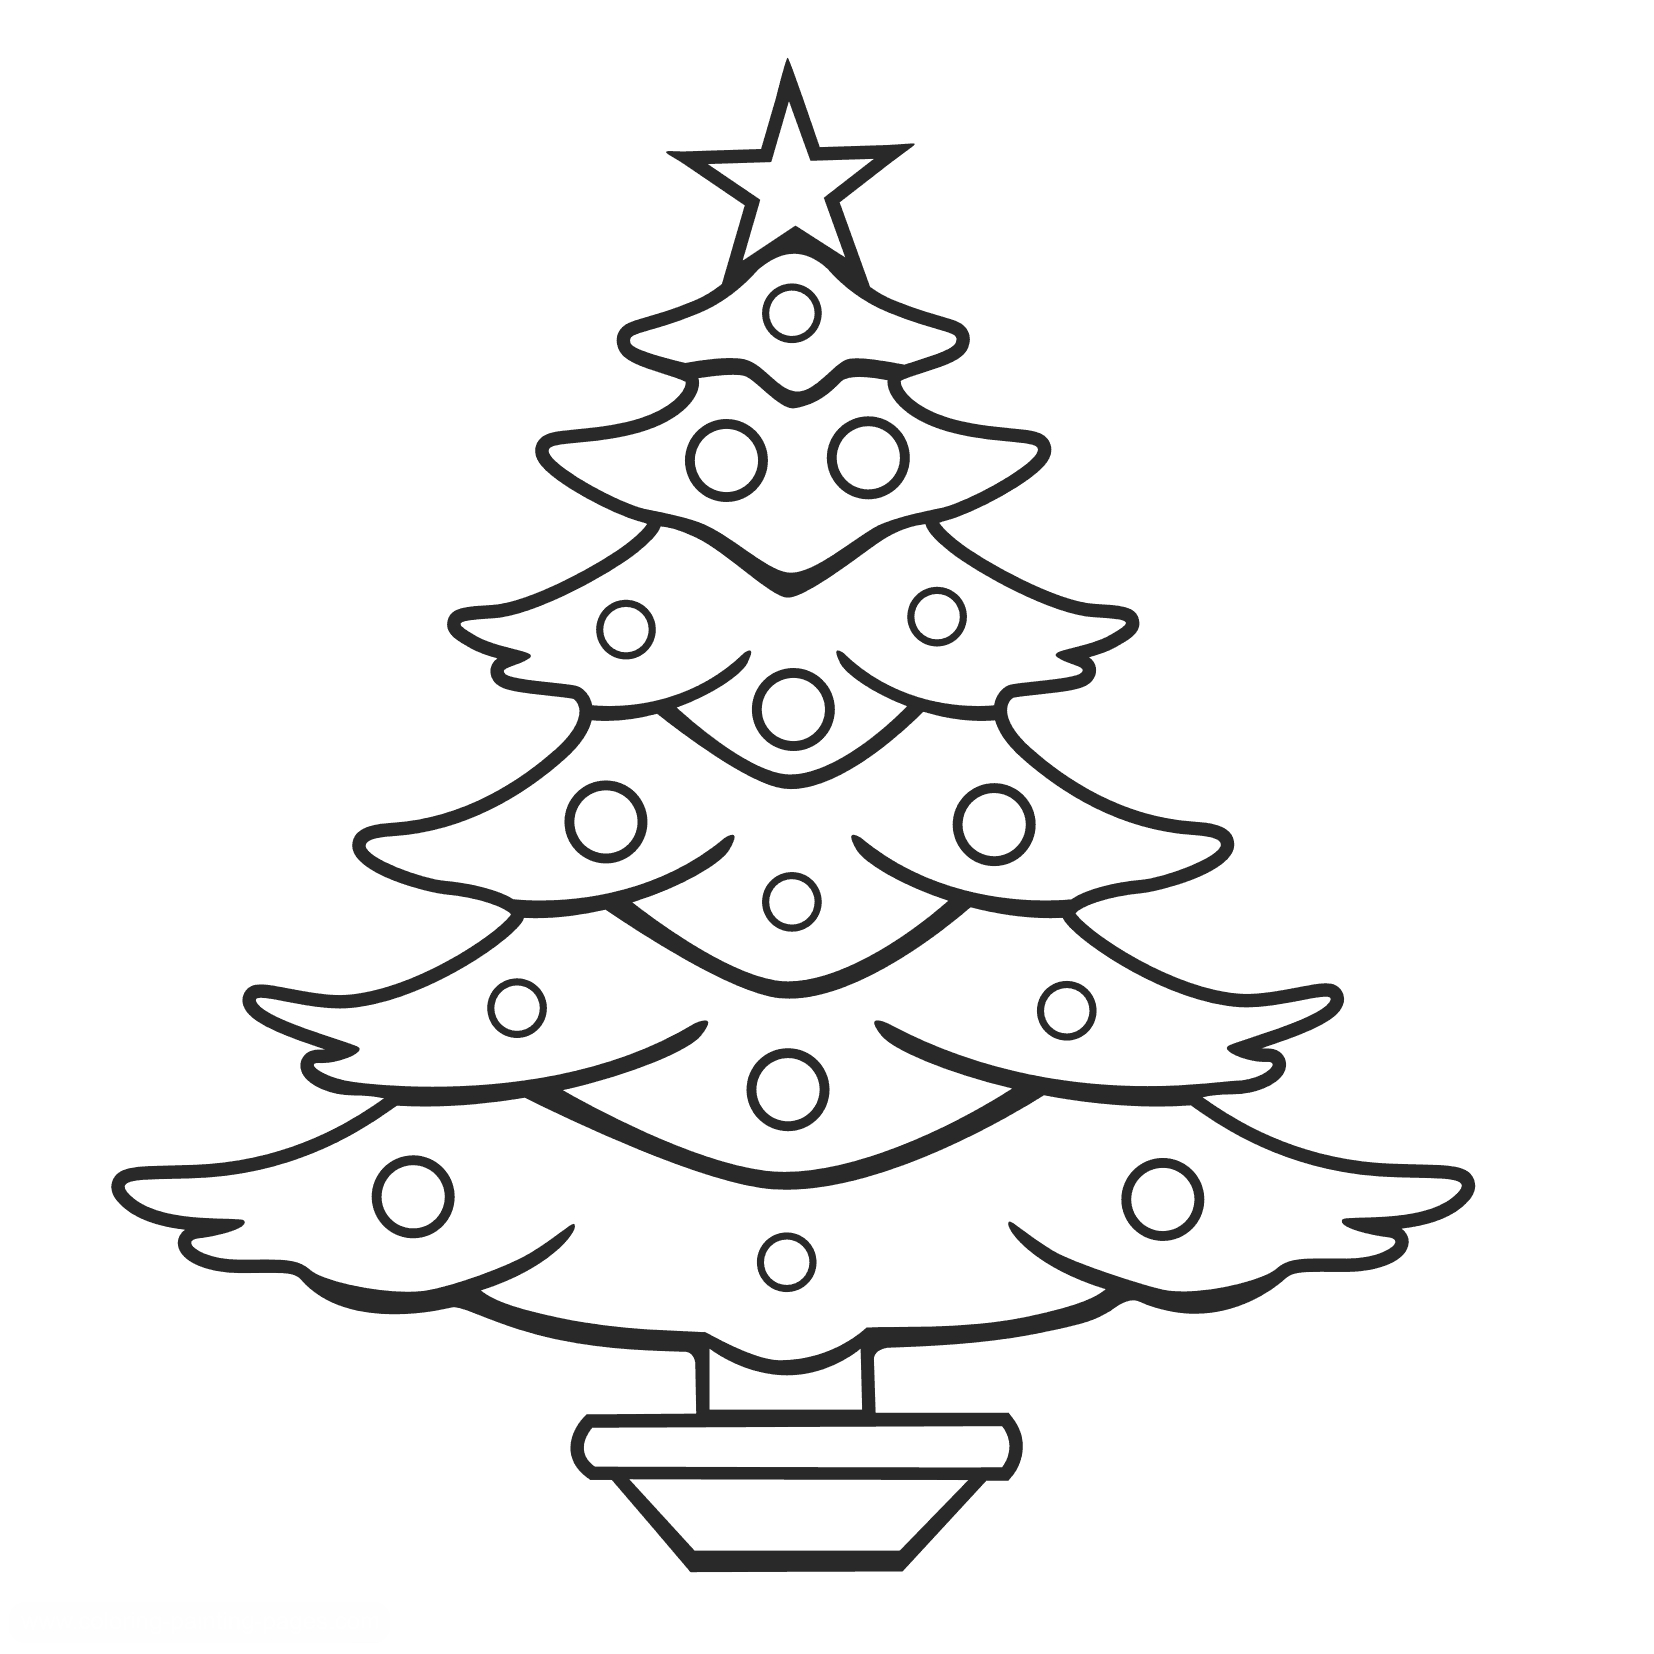 Merry Christmas Tree Drawing